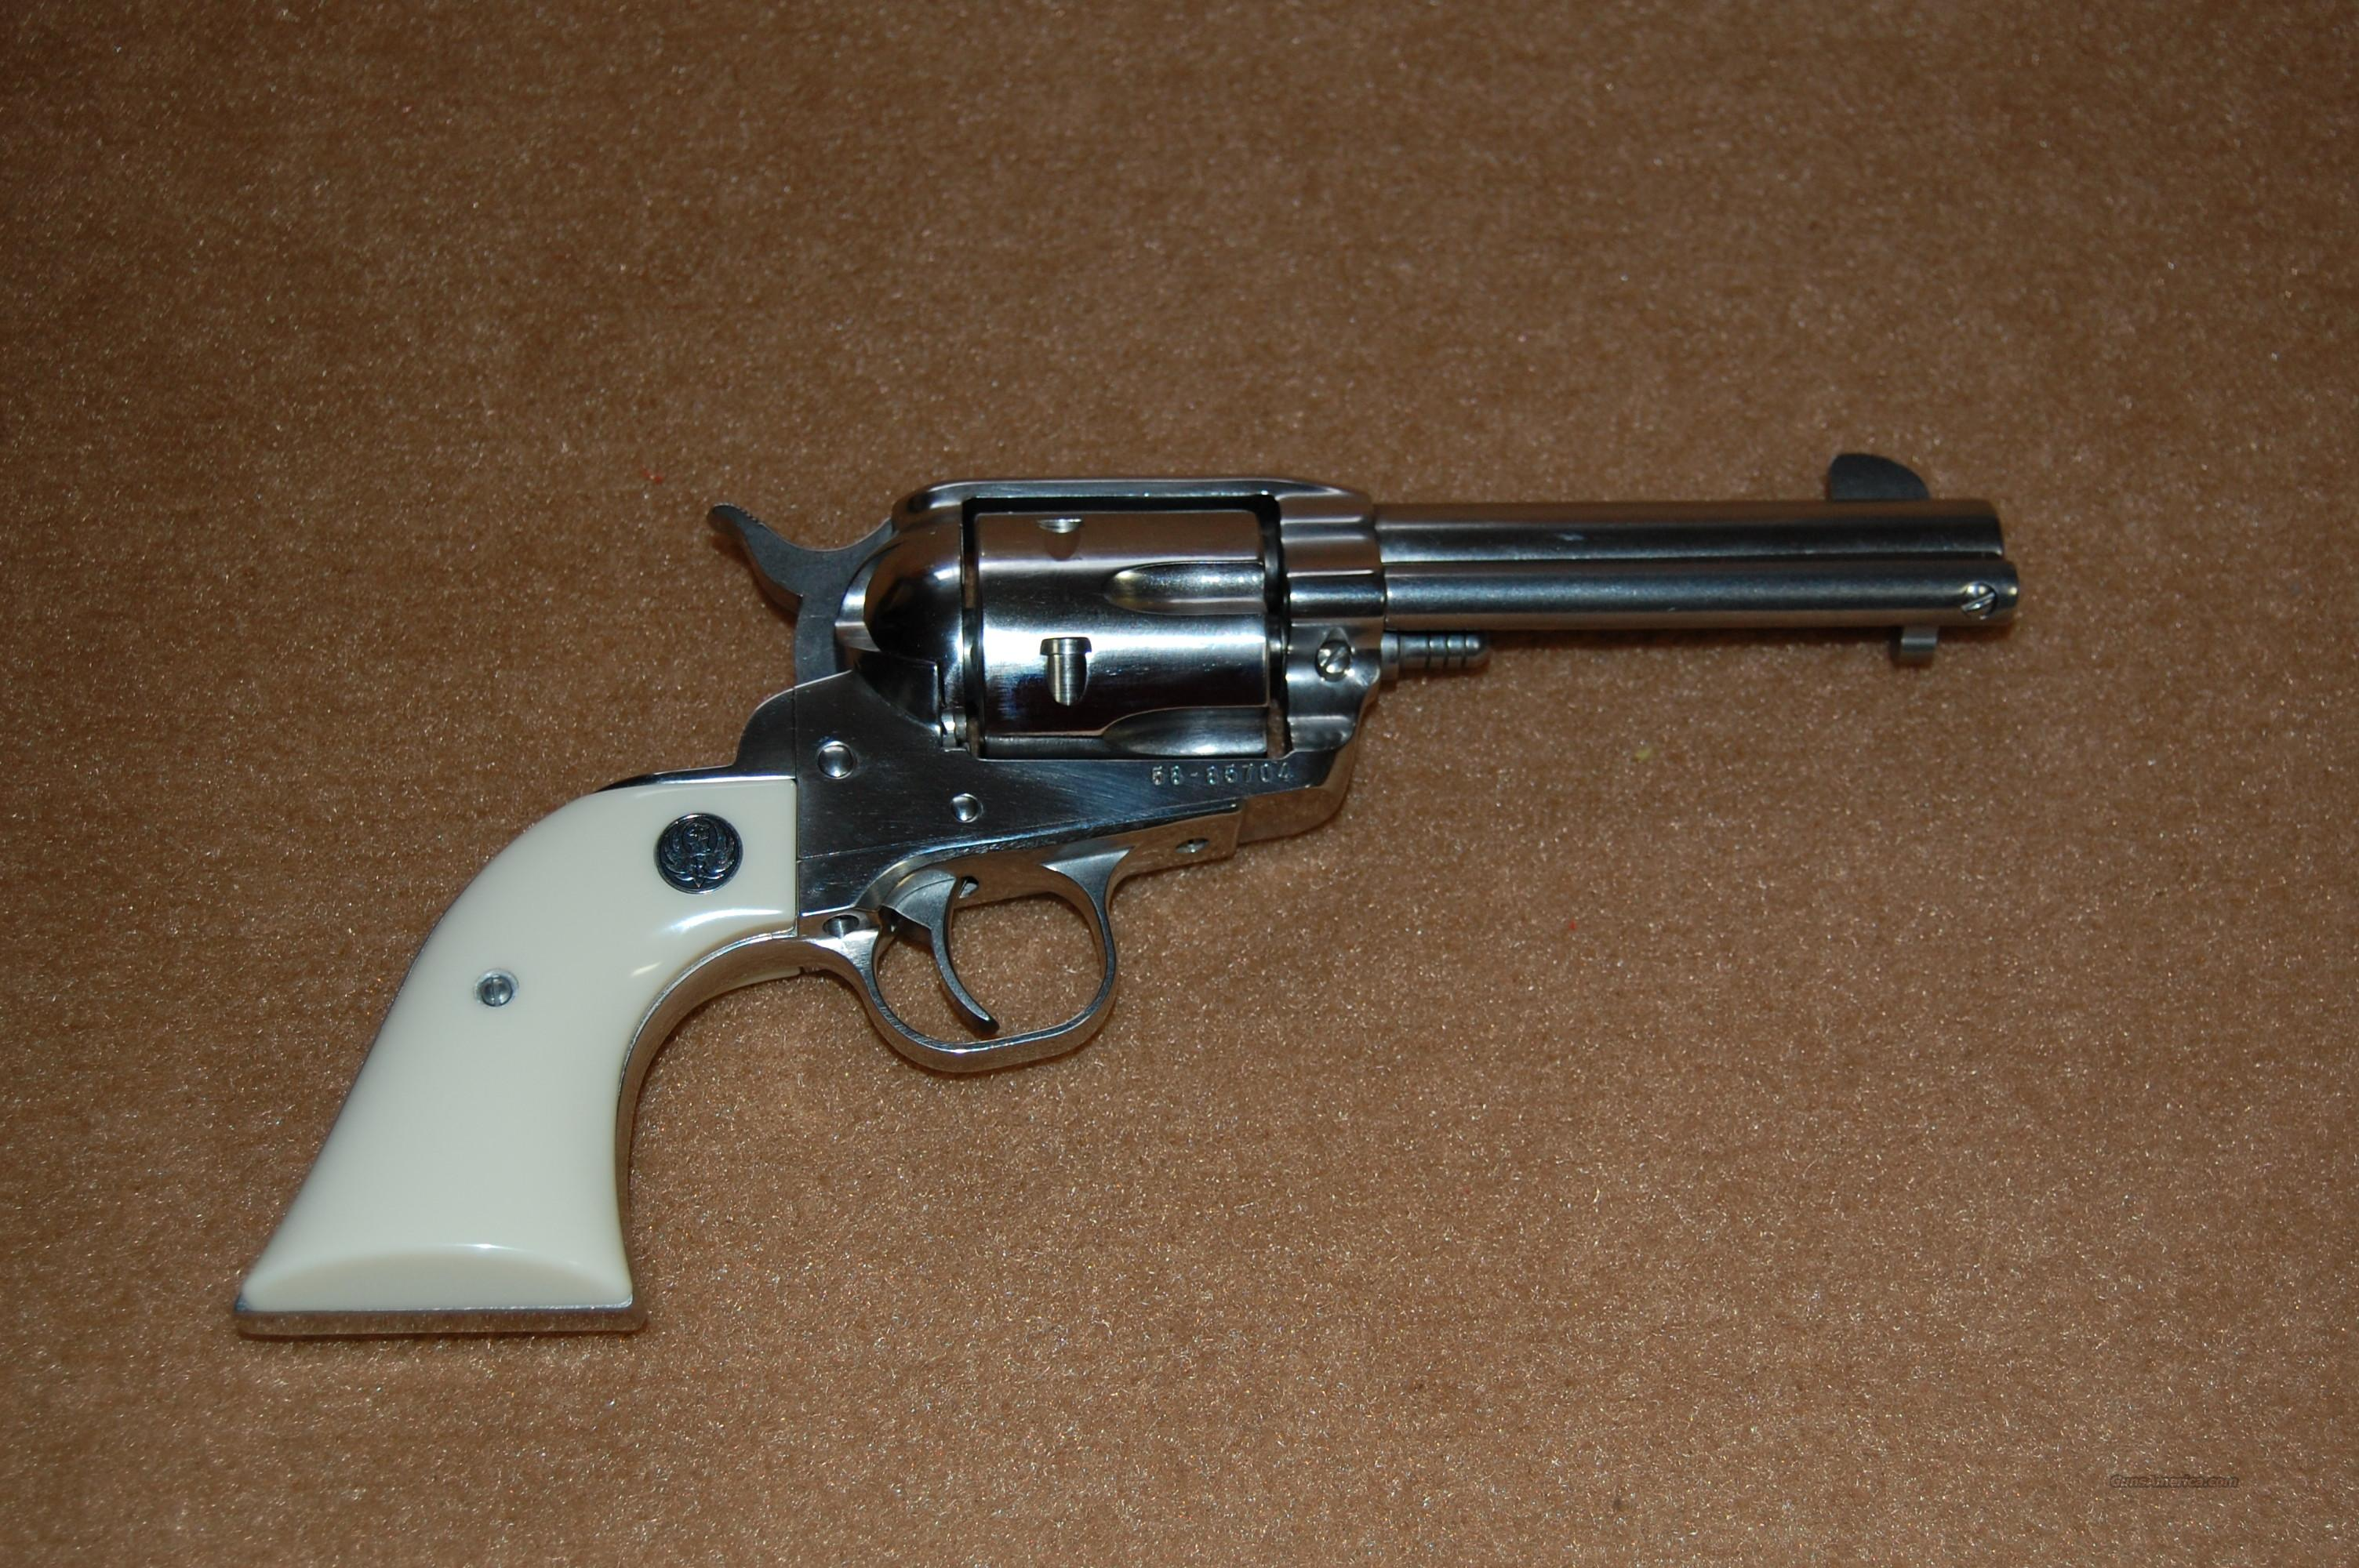 "Vaquero 44 Mag. Rare 4 5/8"" barrel   Guns > Pistols > Ruger Single Action Revolvers > Cowboy Action"